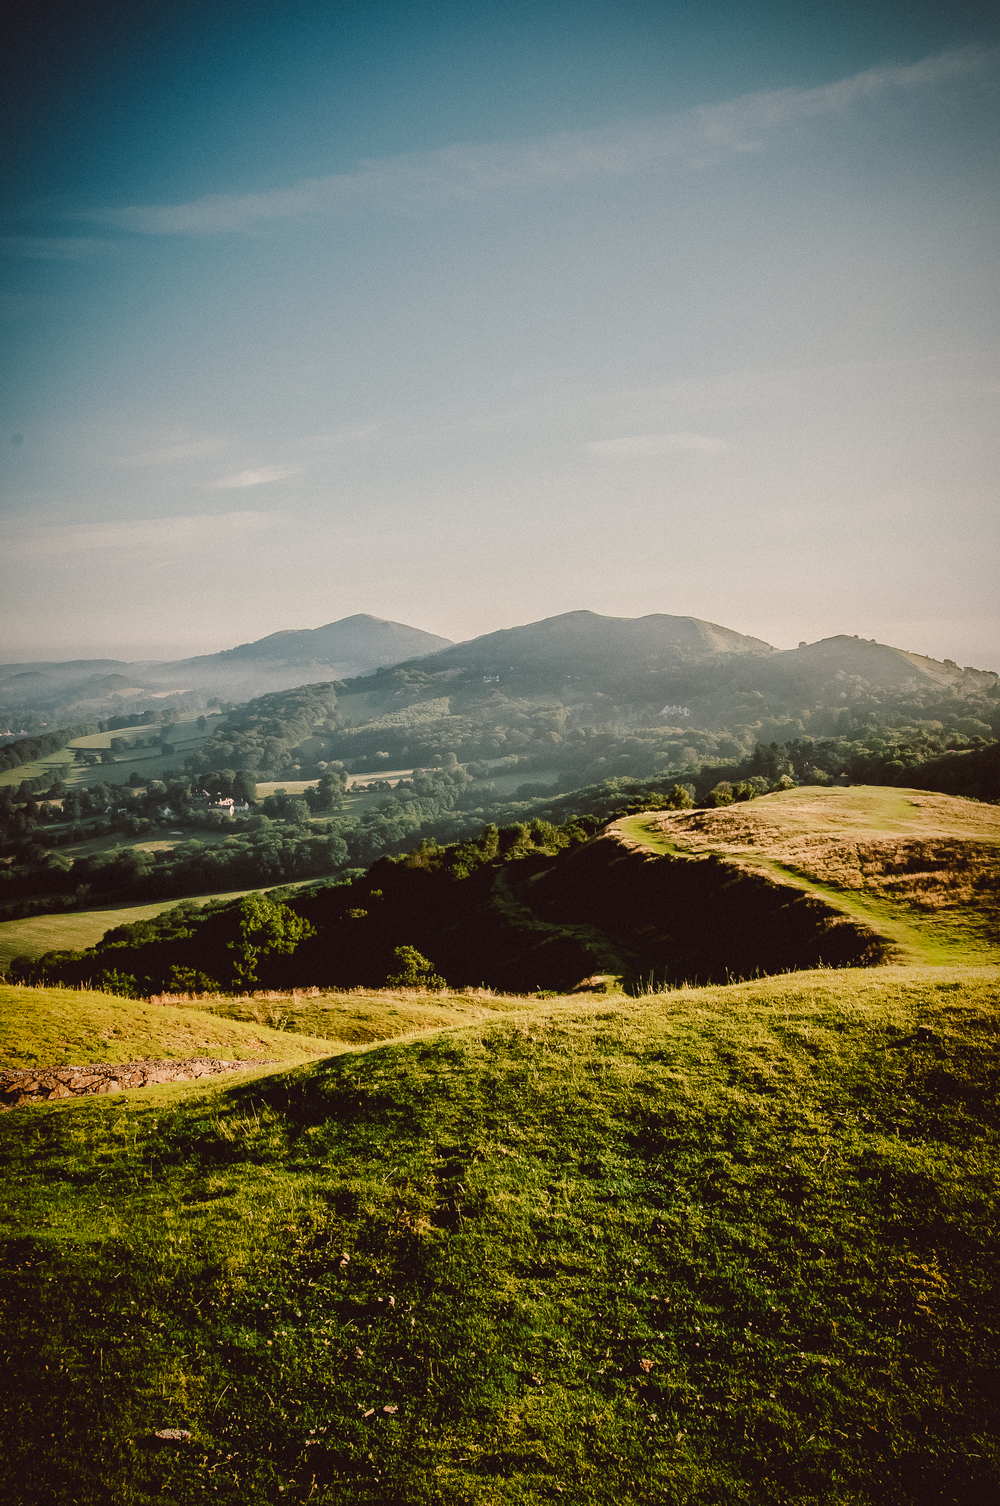 Malvern hills, Worcestershire. Nikon D300 | 18-50mm | F11 - 1/125th - iso200